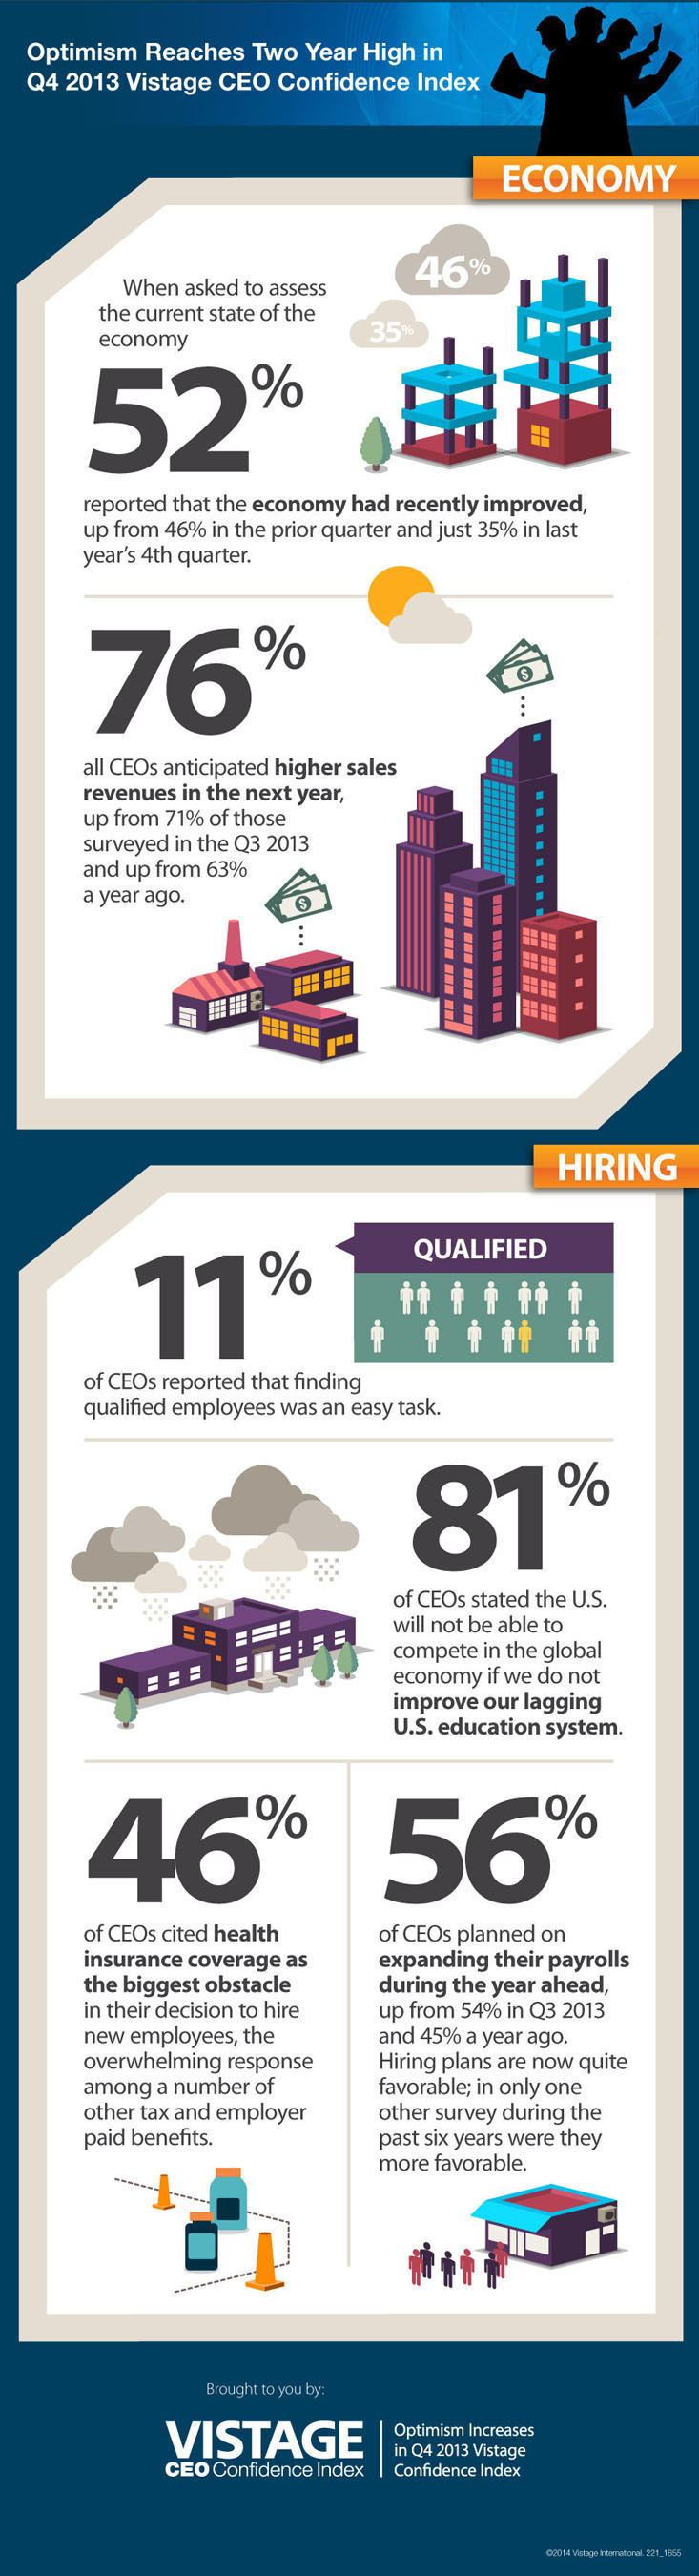 INFOGRAPHIC: View a snapshot of the Q4 2013 Vistage CEO Confidence Index Results. (PRNewsFoto/Vistage ...